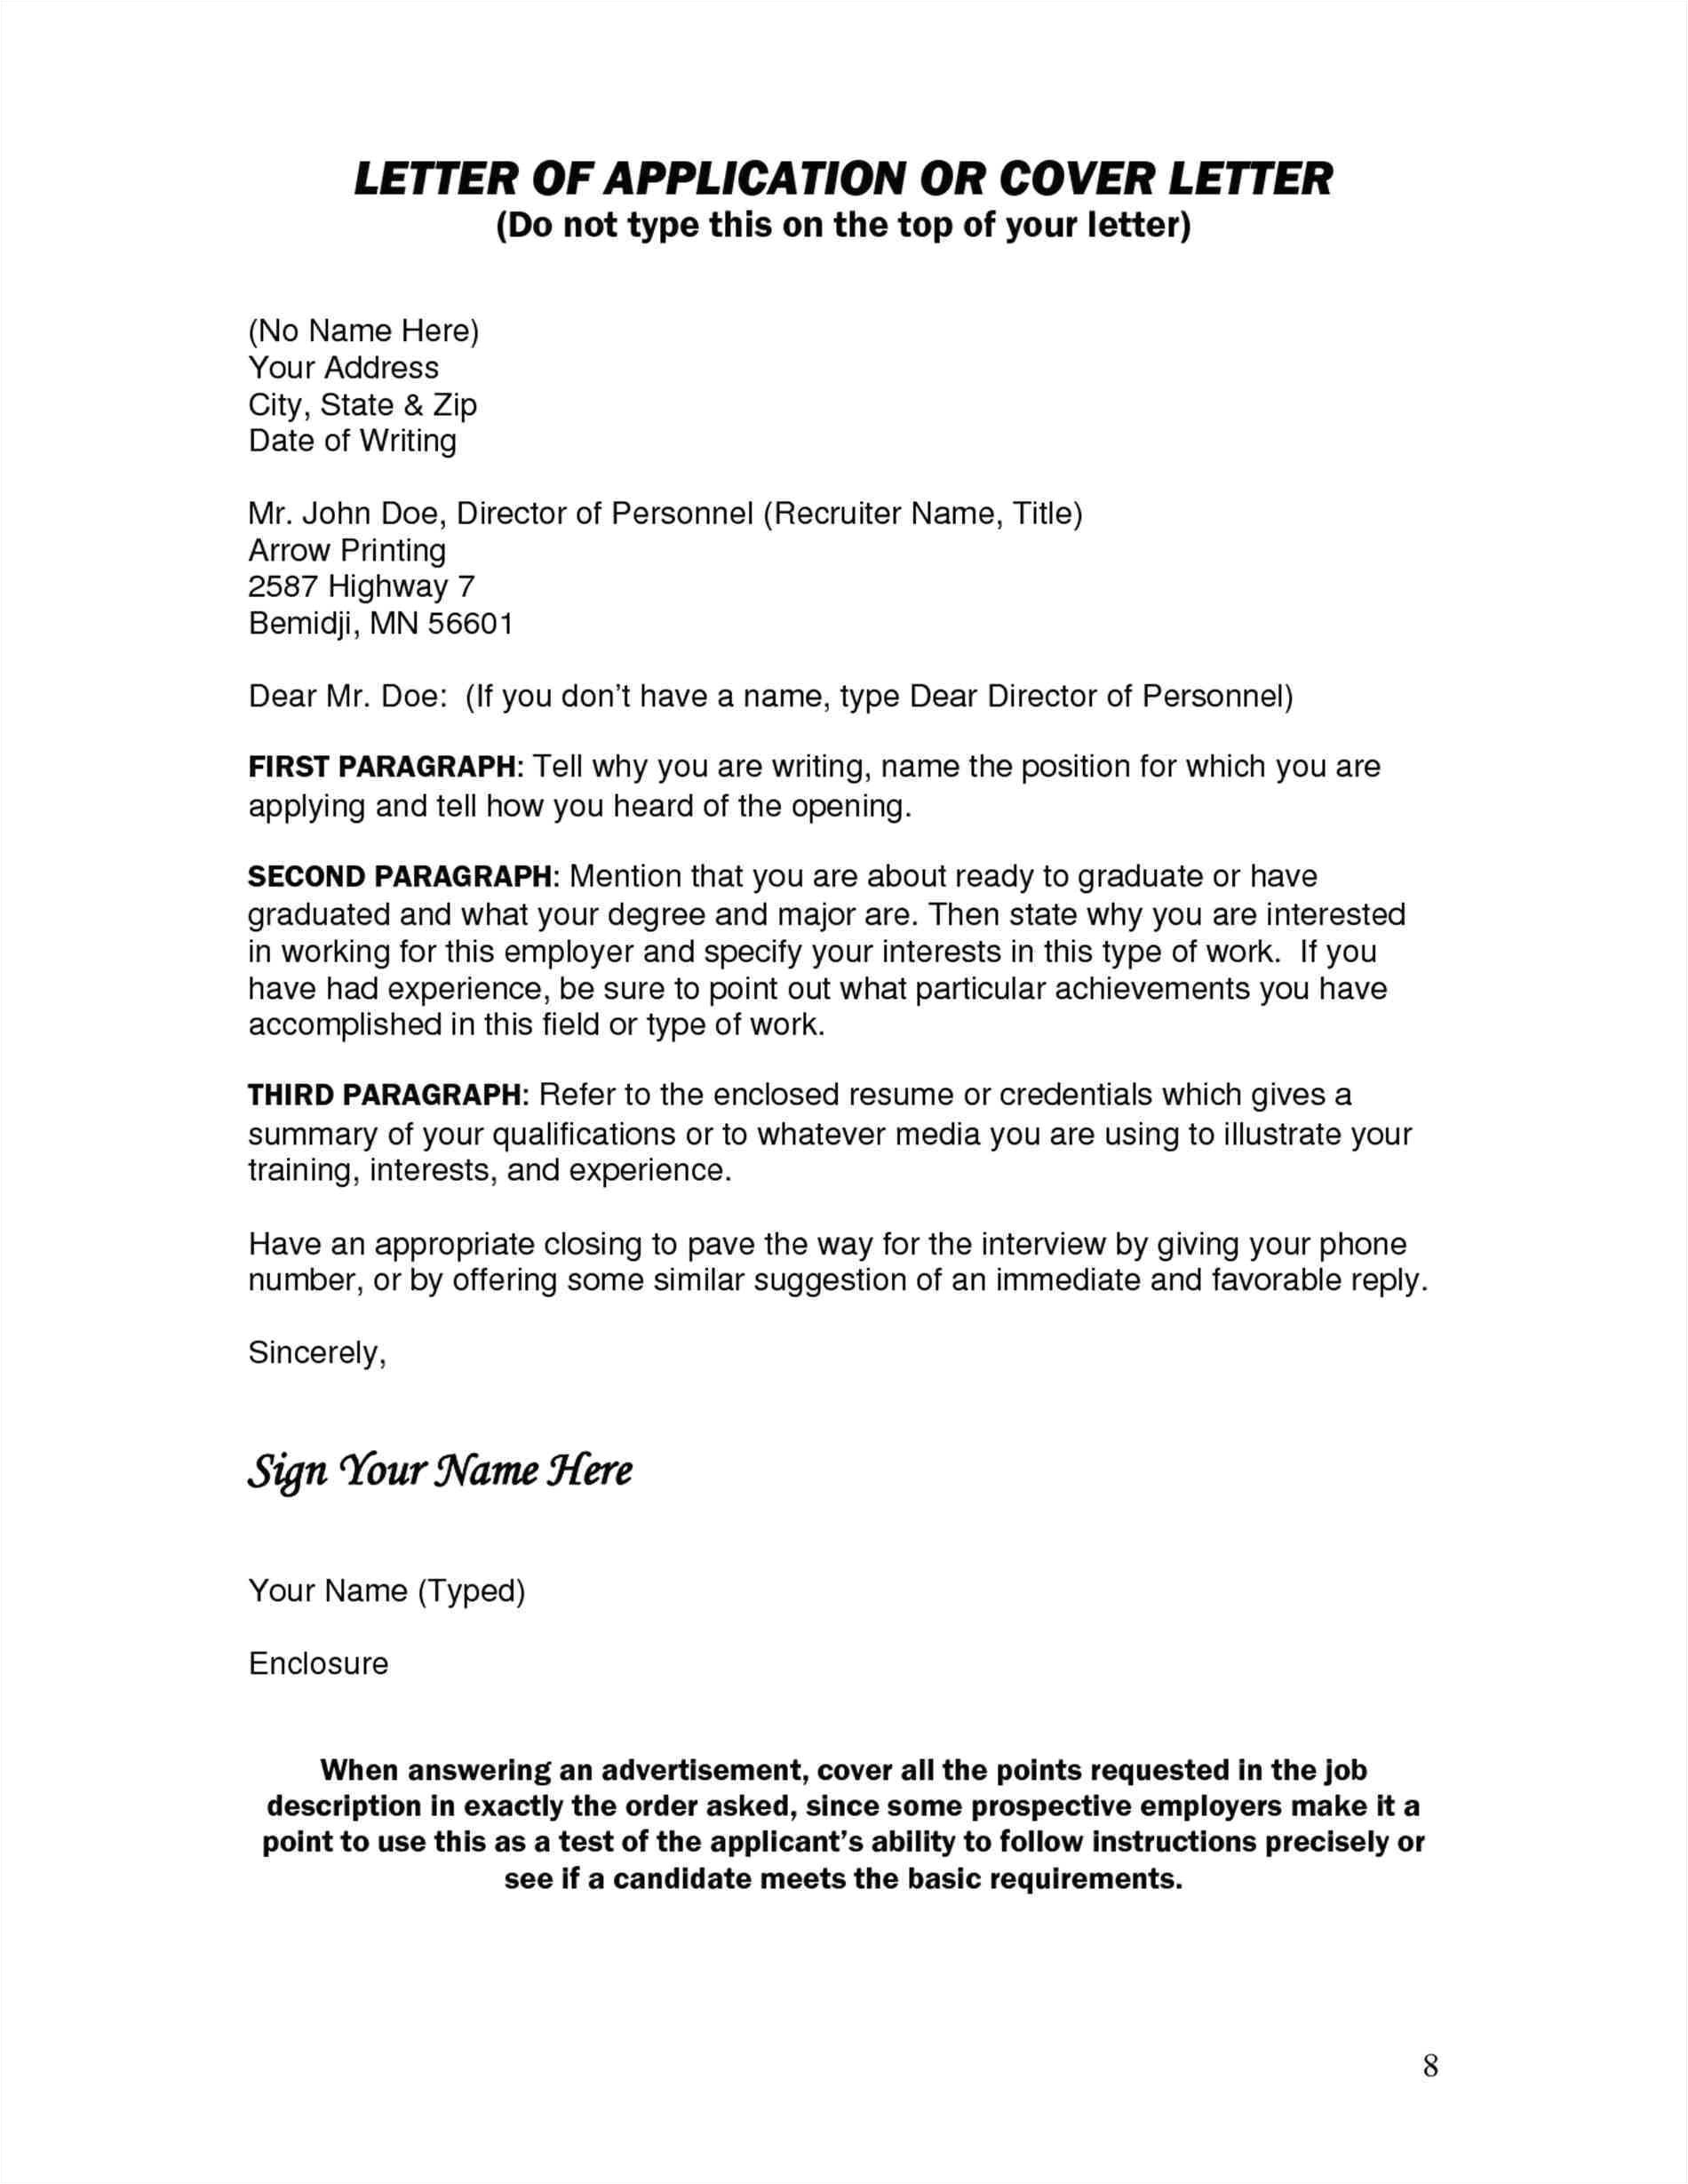 cover letter without specific position for no specific job sample cover letter without addressee about